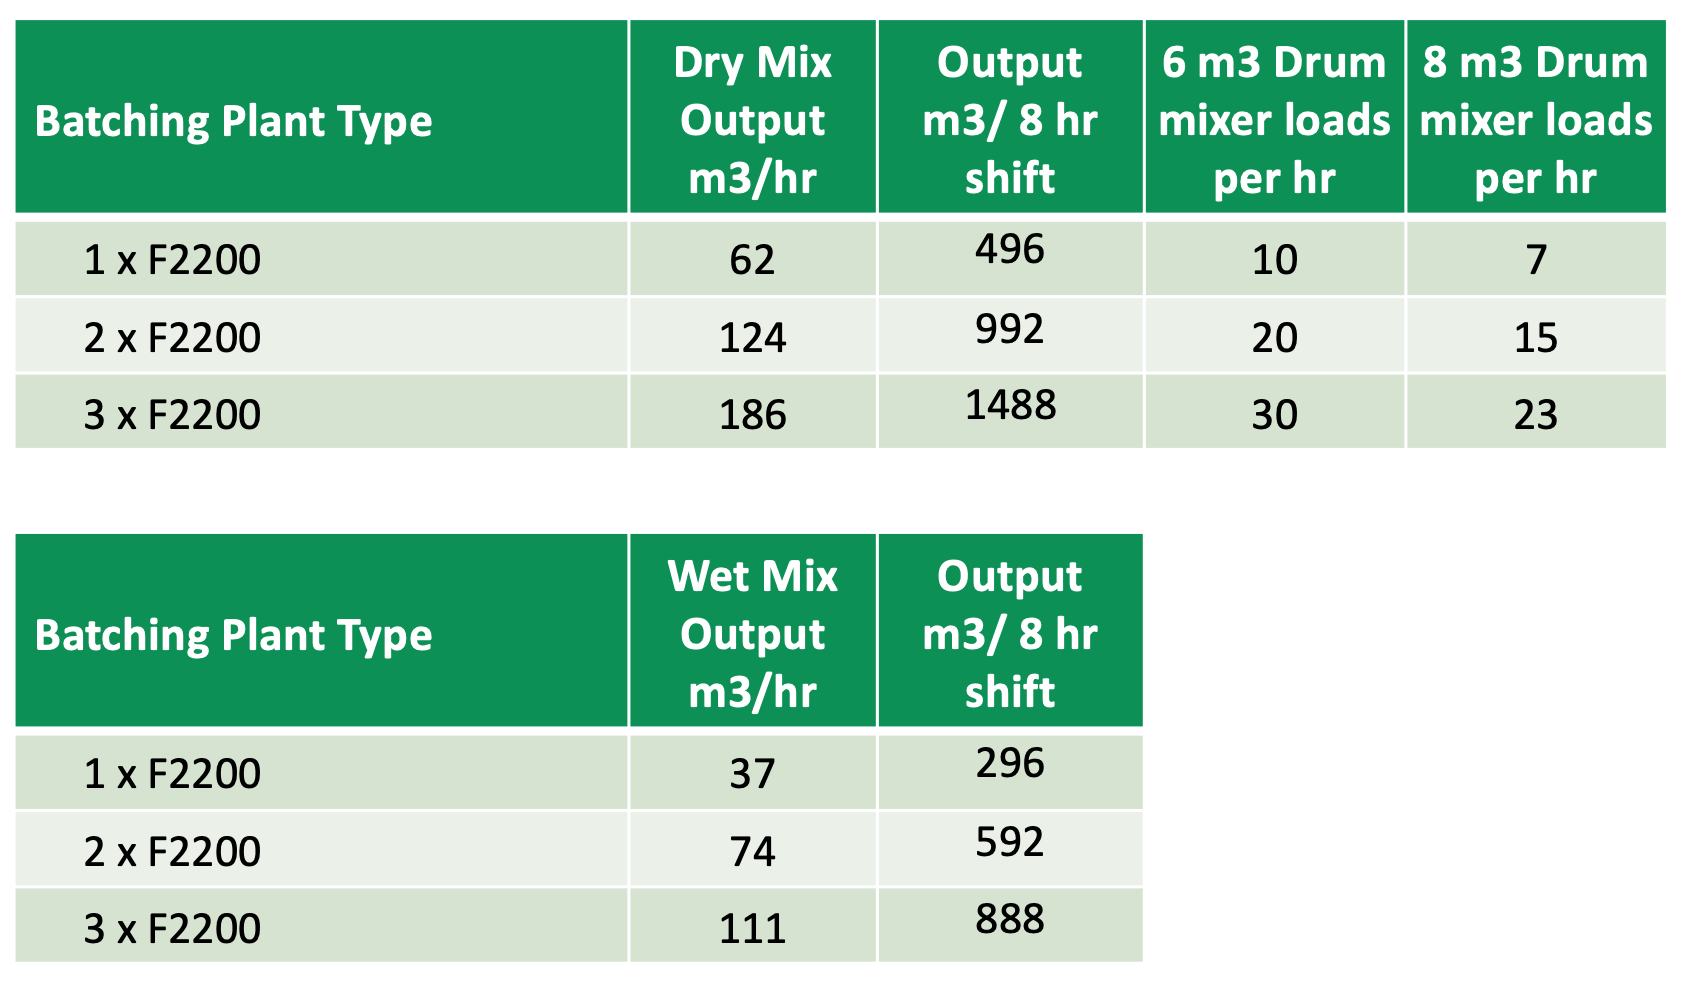 Batching Plant Outputs